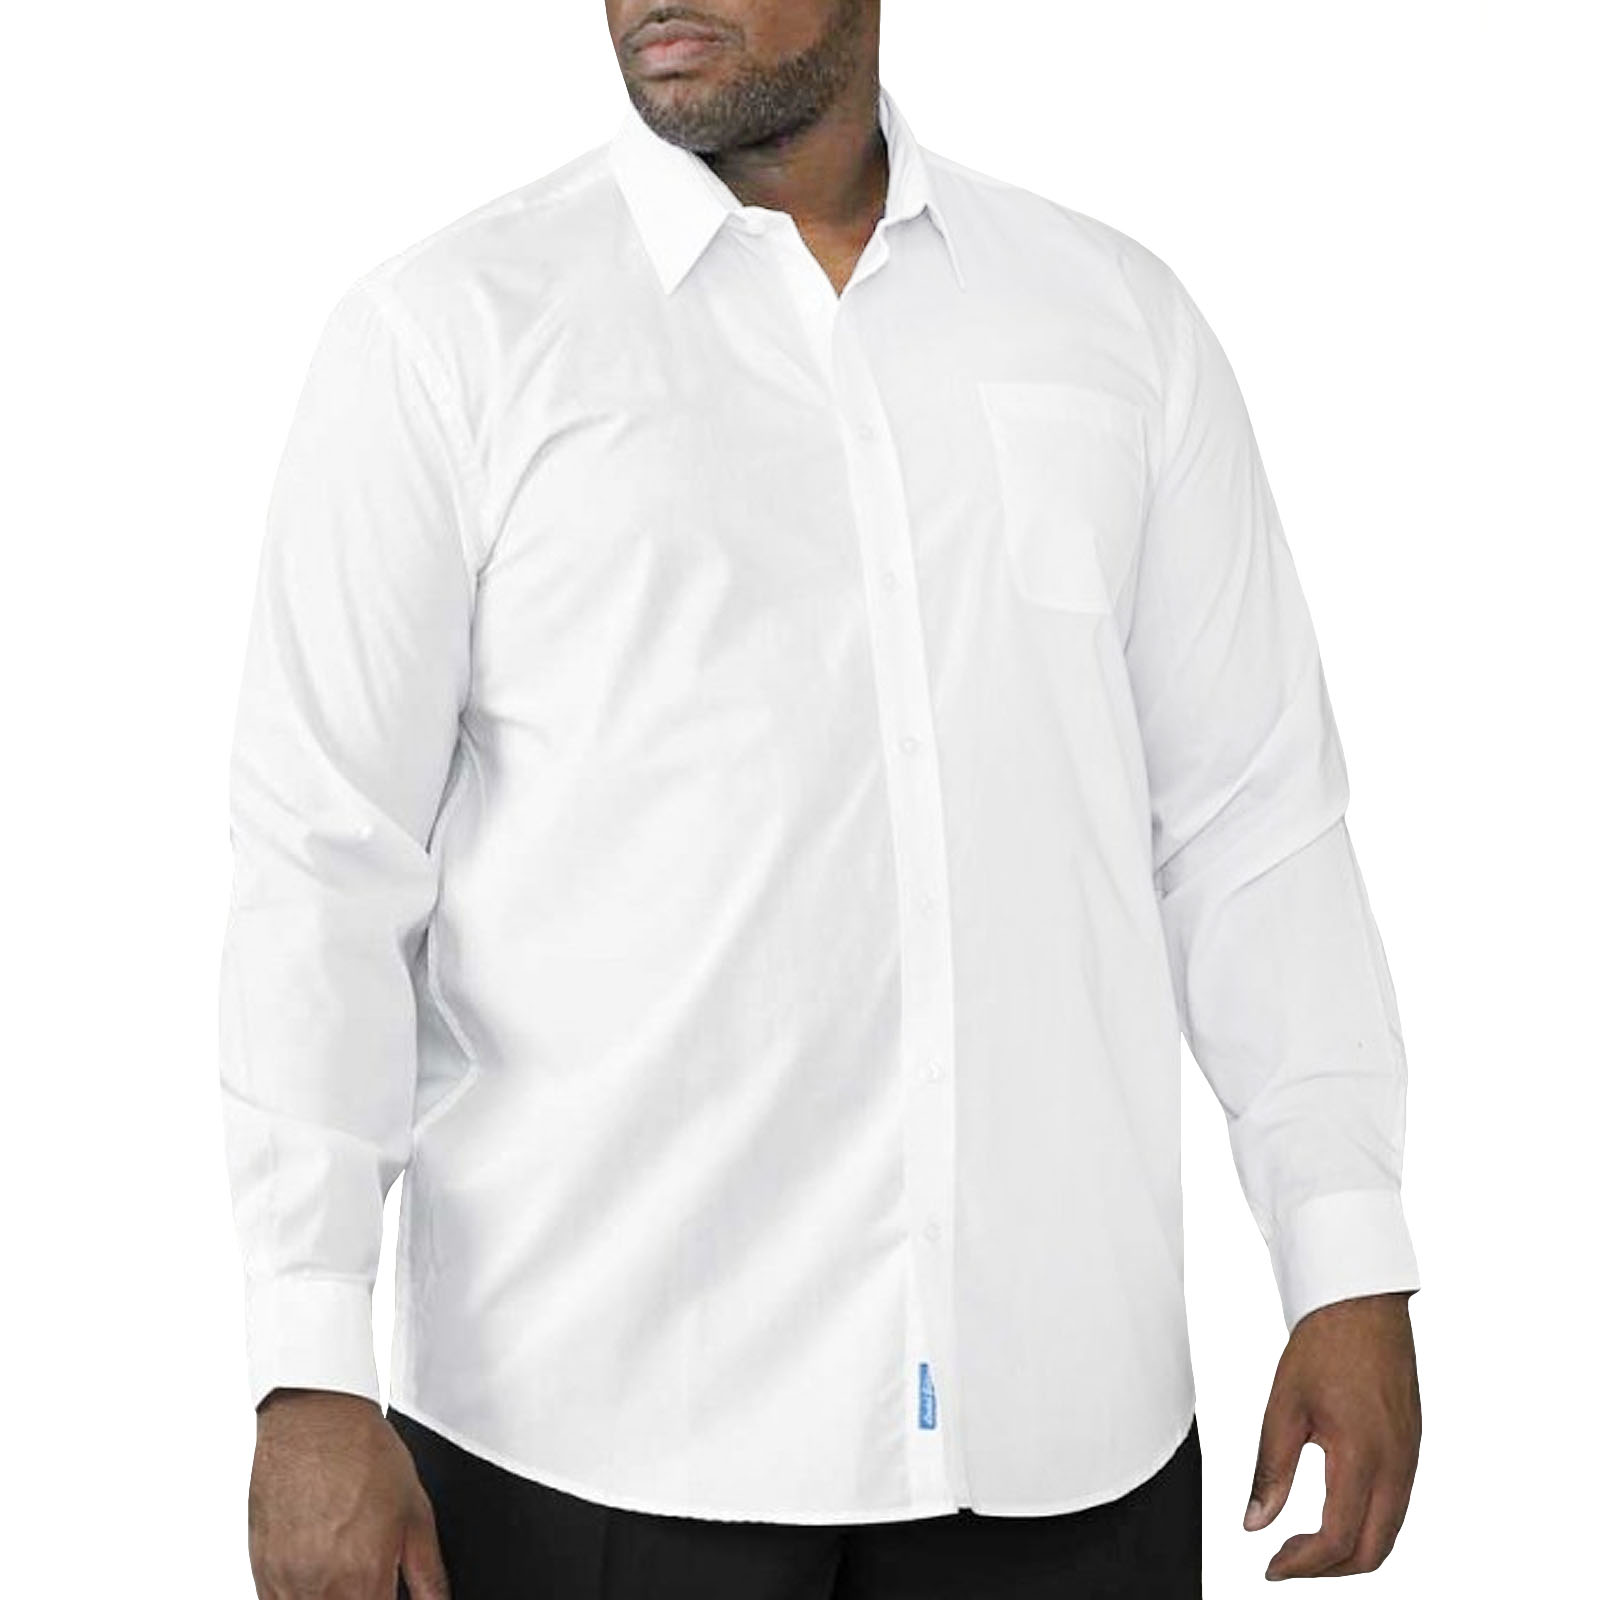 Details about D555 Mens Aiden Easy Iron Smart Casual Long Sleeve Button Up  Shirt - White 26cf86f2a59